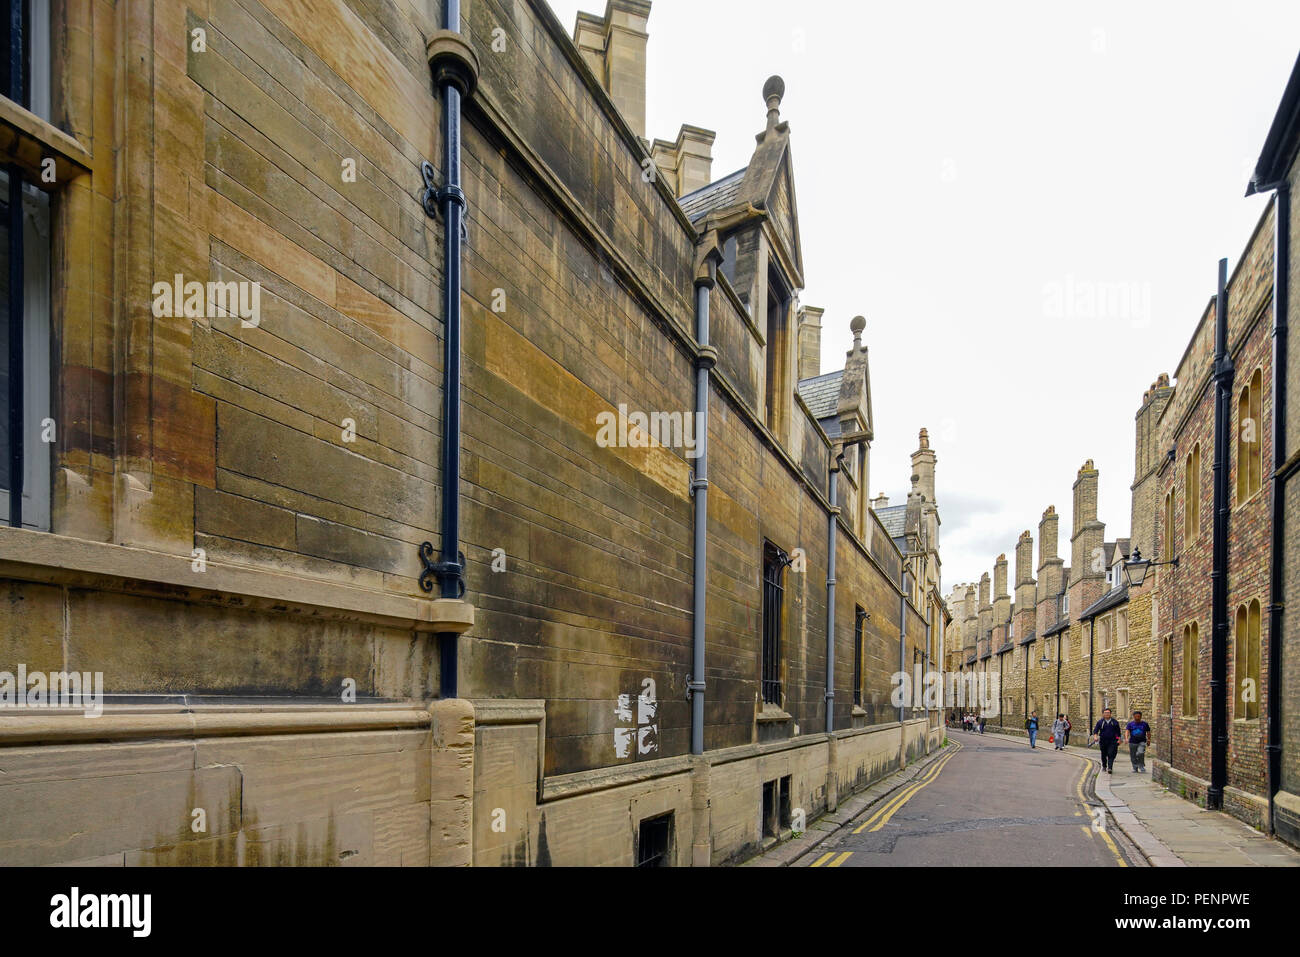 Gonville & Caius College and Trinity college from Trinity Lane, Cambridge, England, U.K. - Stock Image